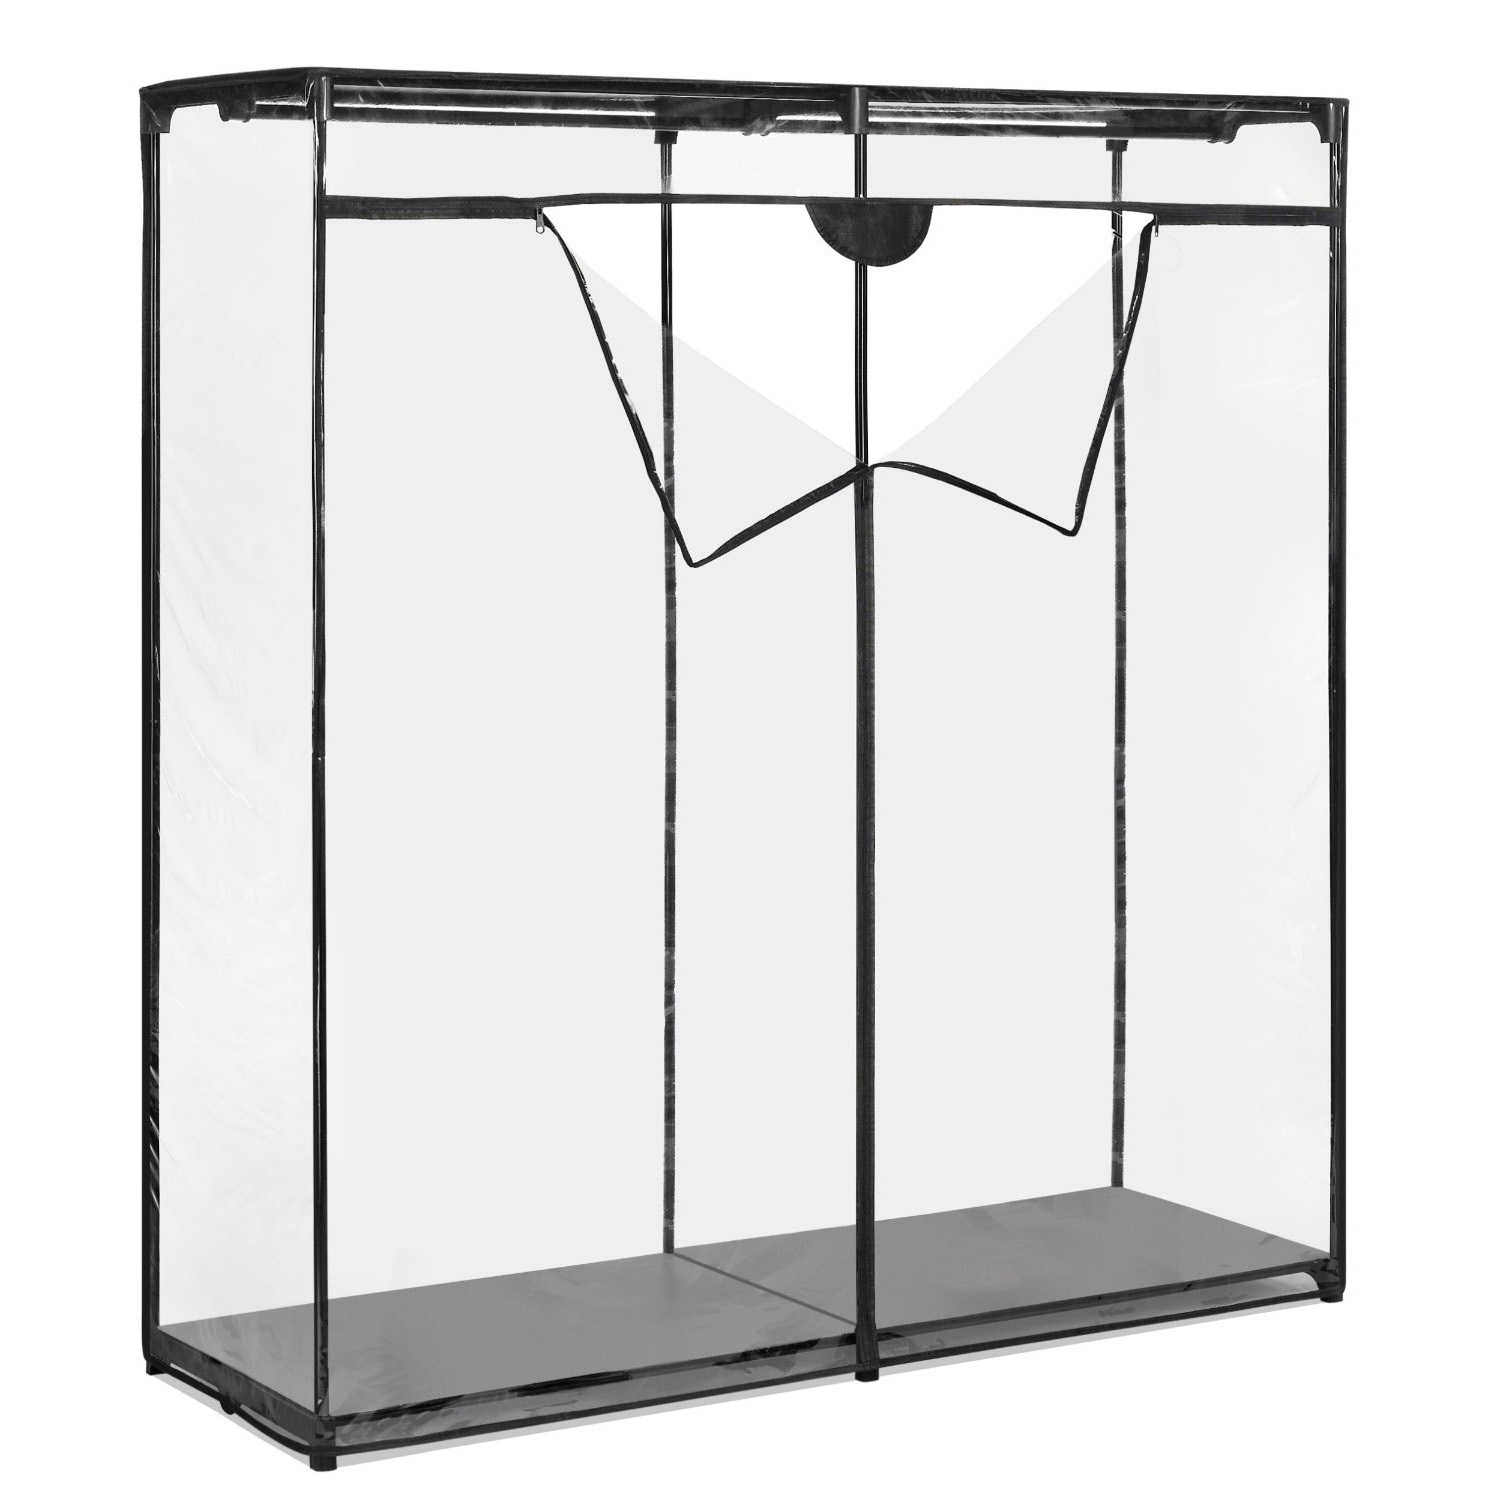 "Whitmor Extra Wide 60"" Clothes Closet - Freestanding Garment Organizer with Clear Cover"